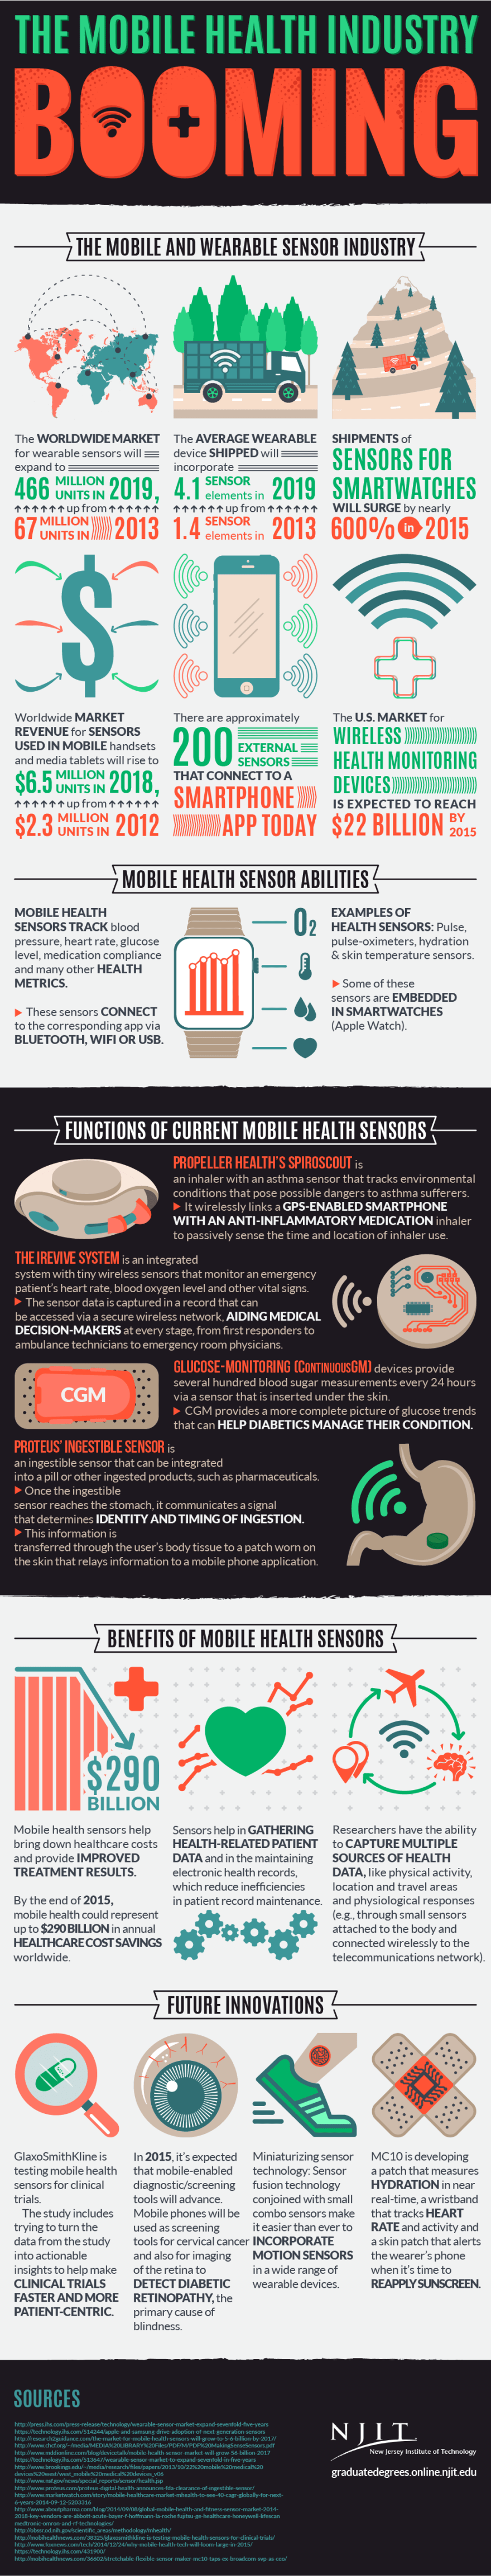 Mobile-health-industry-3-01